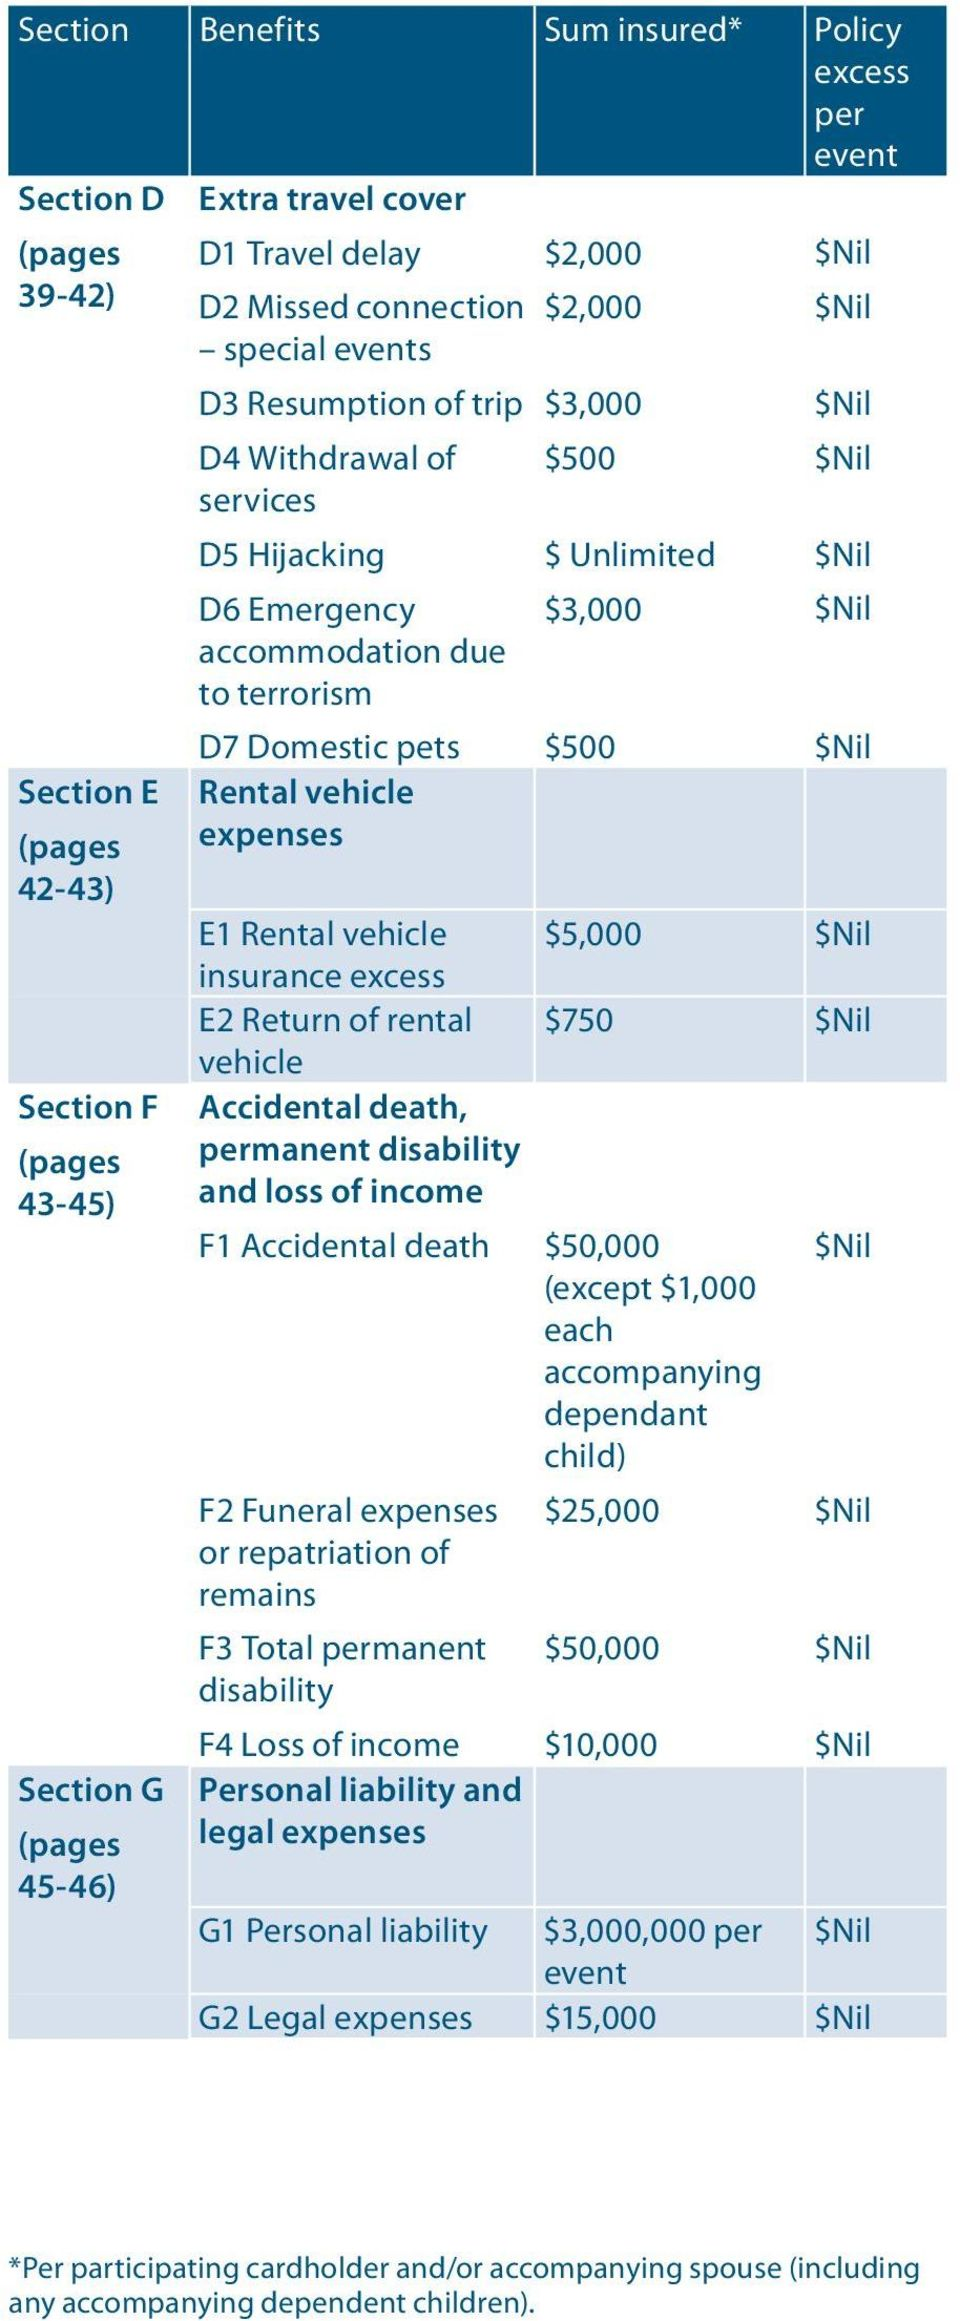 42-43) E1 Rental vehicle $5,000 $Nil insurance excess E2 Return of rental $750 $Nil vehicle Section F Accidental death, (pages permanent disability 43-45) and loss of income F1 Accidental death F2